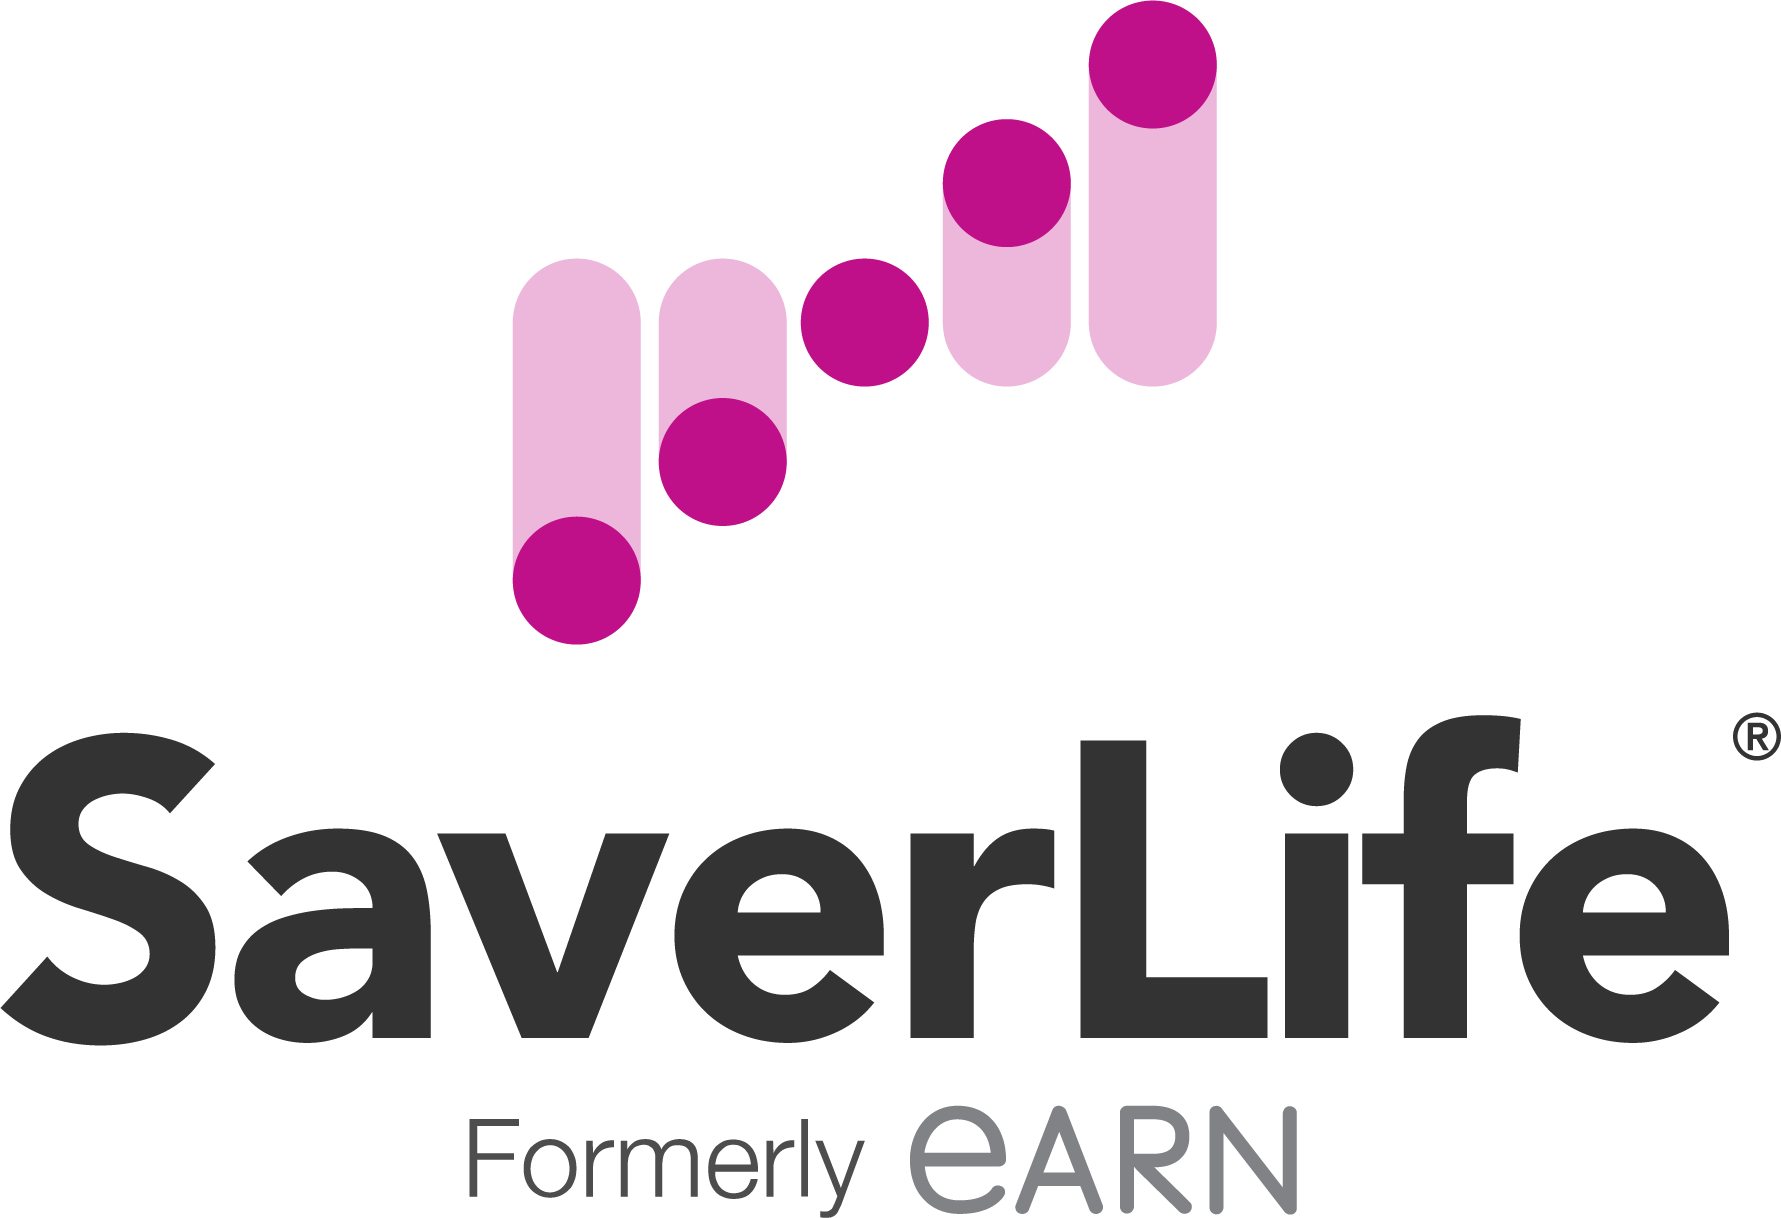 SaverLife-formerly-EARN_Stacked